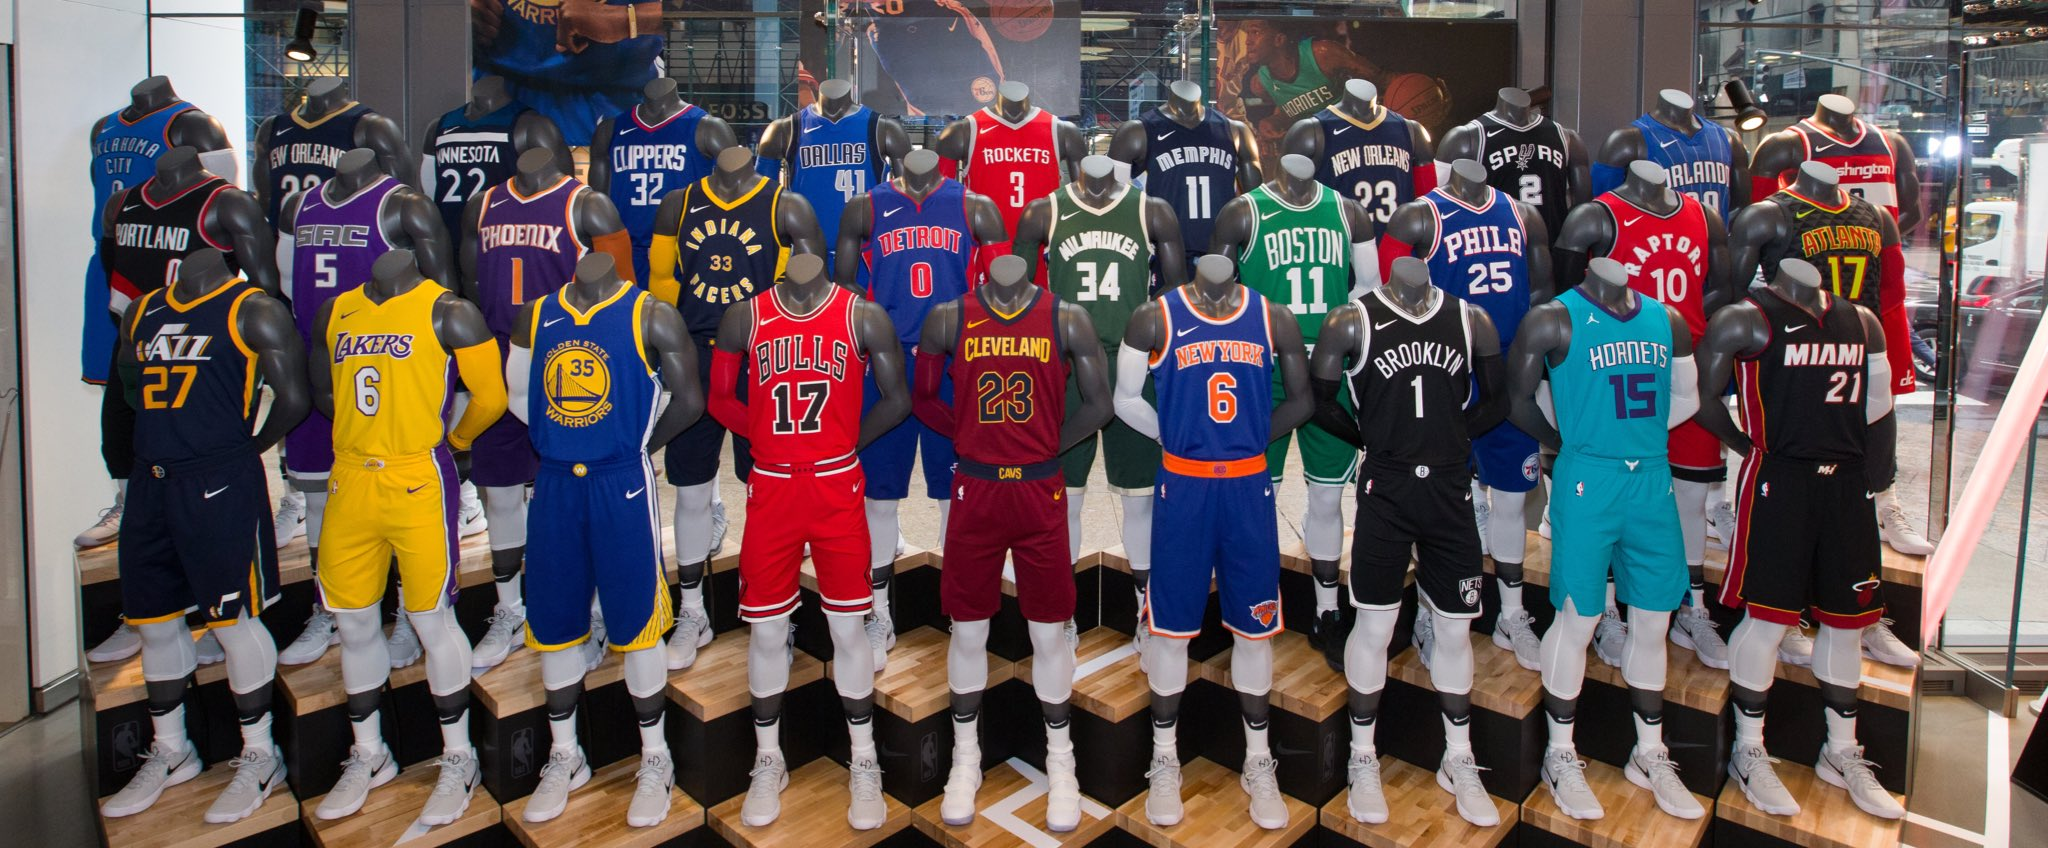 "Darren Rovell on Twitter: ""NBA Store in NYC now selling ..."